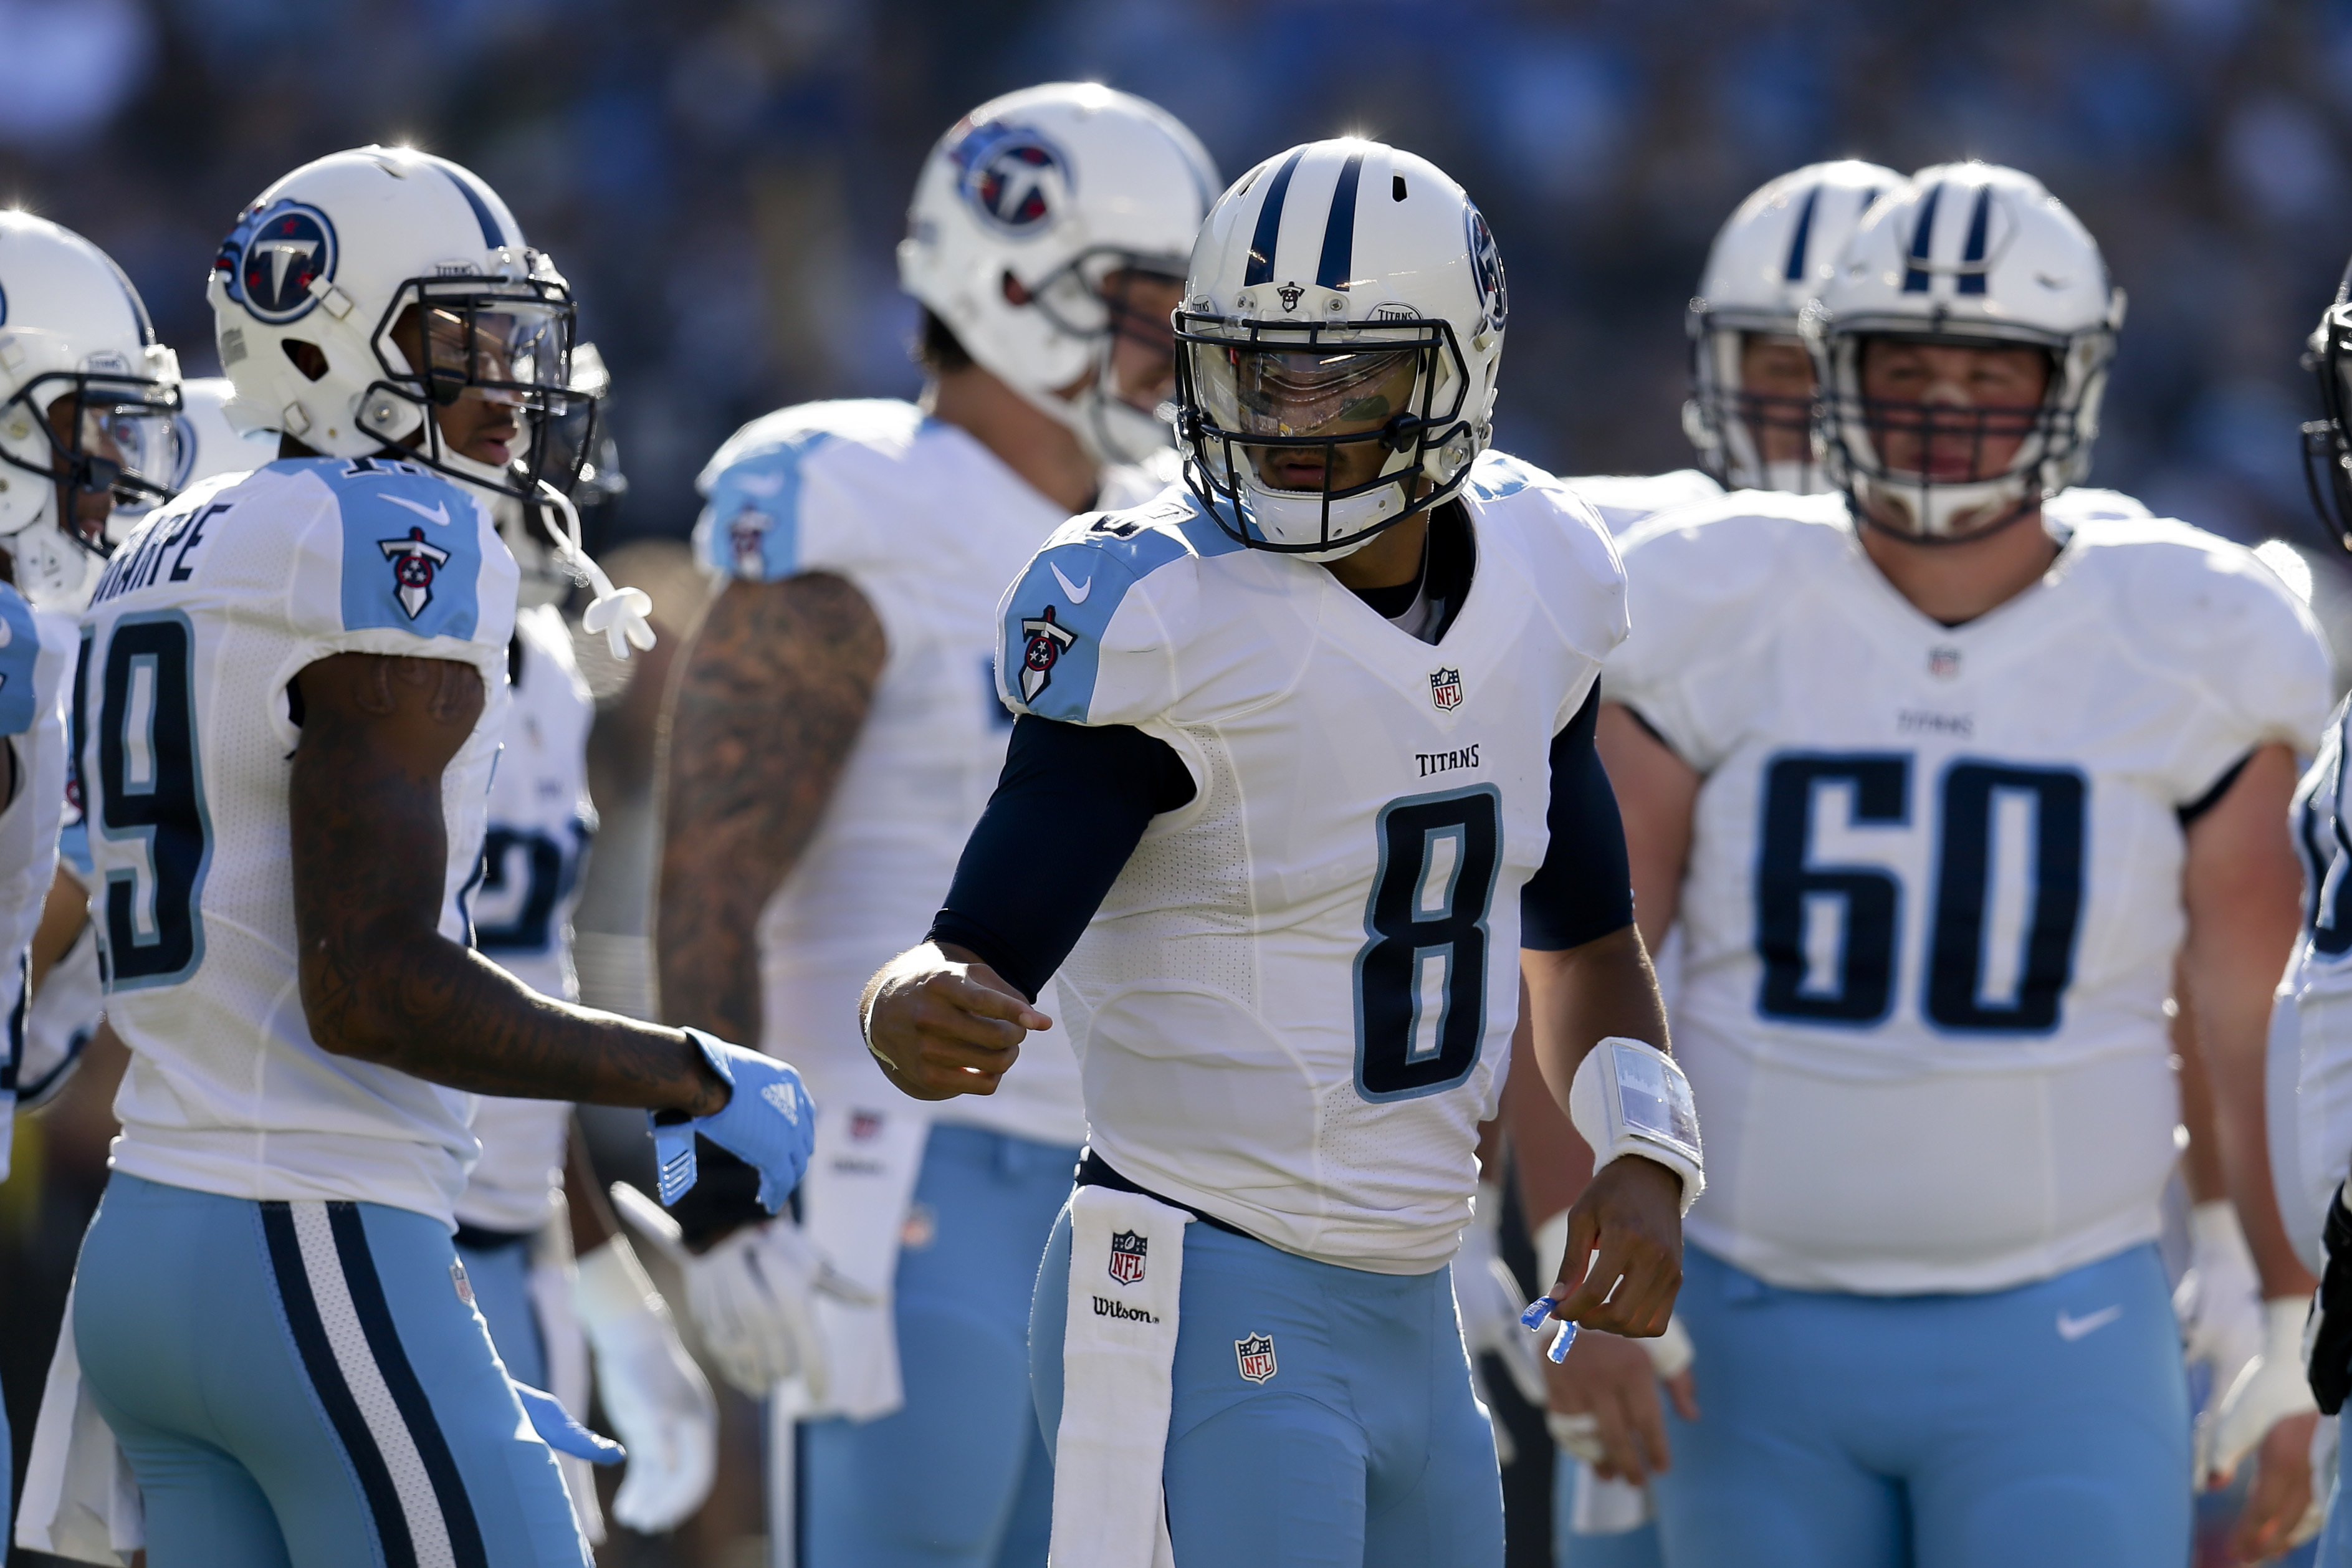 FILE - In this Nov. 6, 2016, file photo, Tennessee Titans quarterback Marcus Mariota motions in the huddle during the first half of an NFL football game against the San Diego Chargers, in San Diego. The Titans second-year quarterback is putting together o